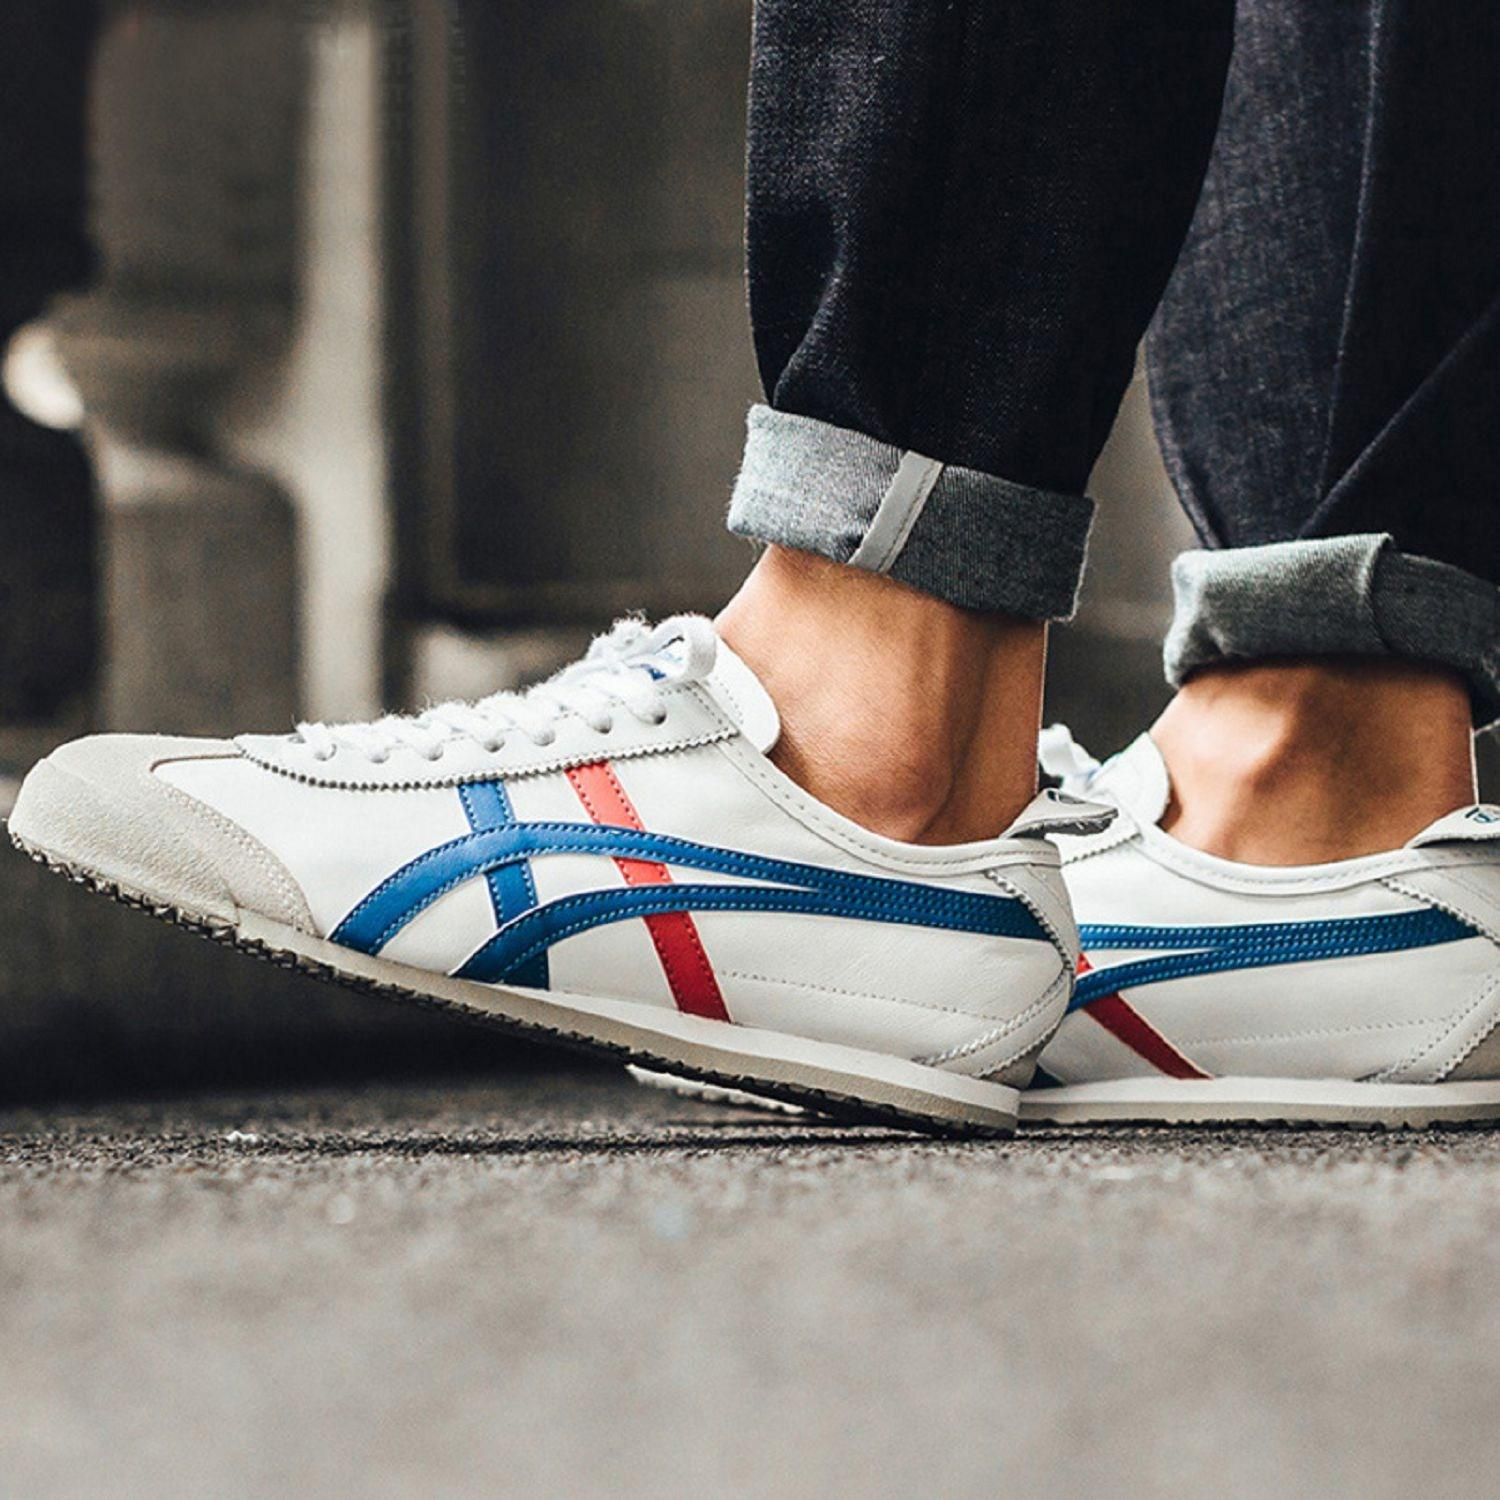 Onitsuka Tiger Mens Shoes Price In Malaysia Best Sepatu Bayi White Asics Womens Casual Mexico 66 Athletic Dl408 0146